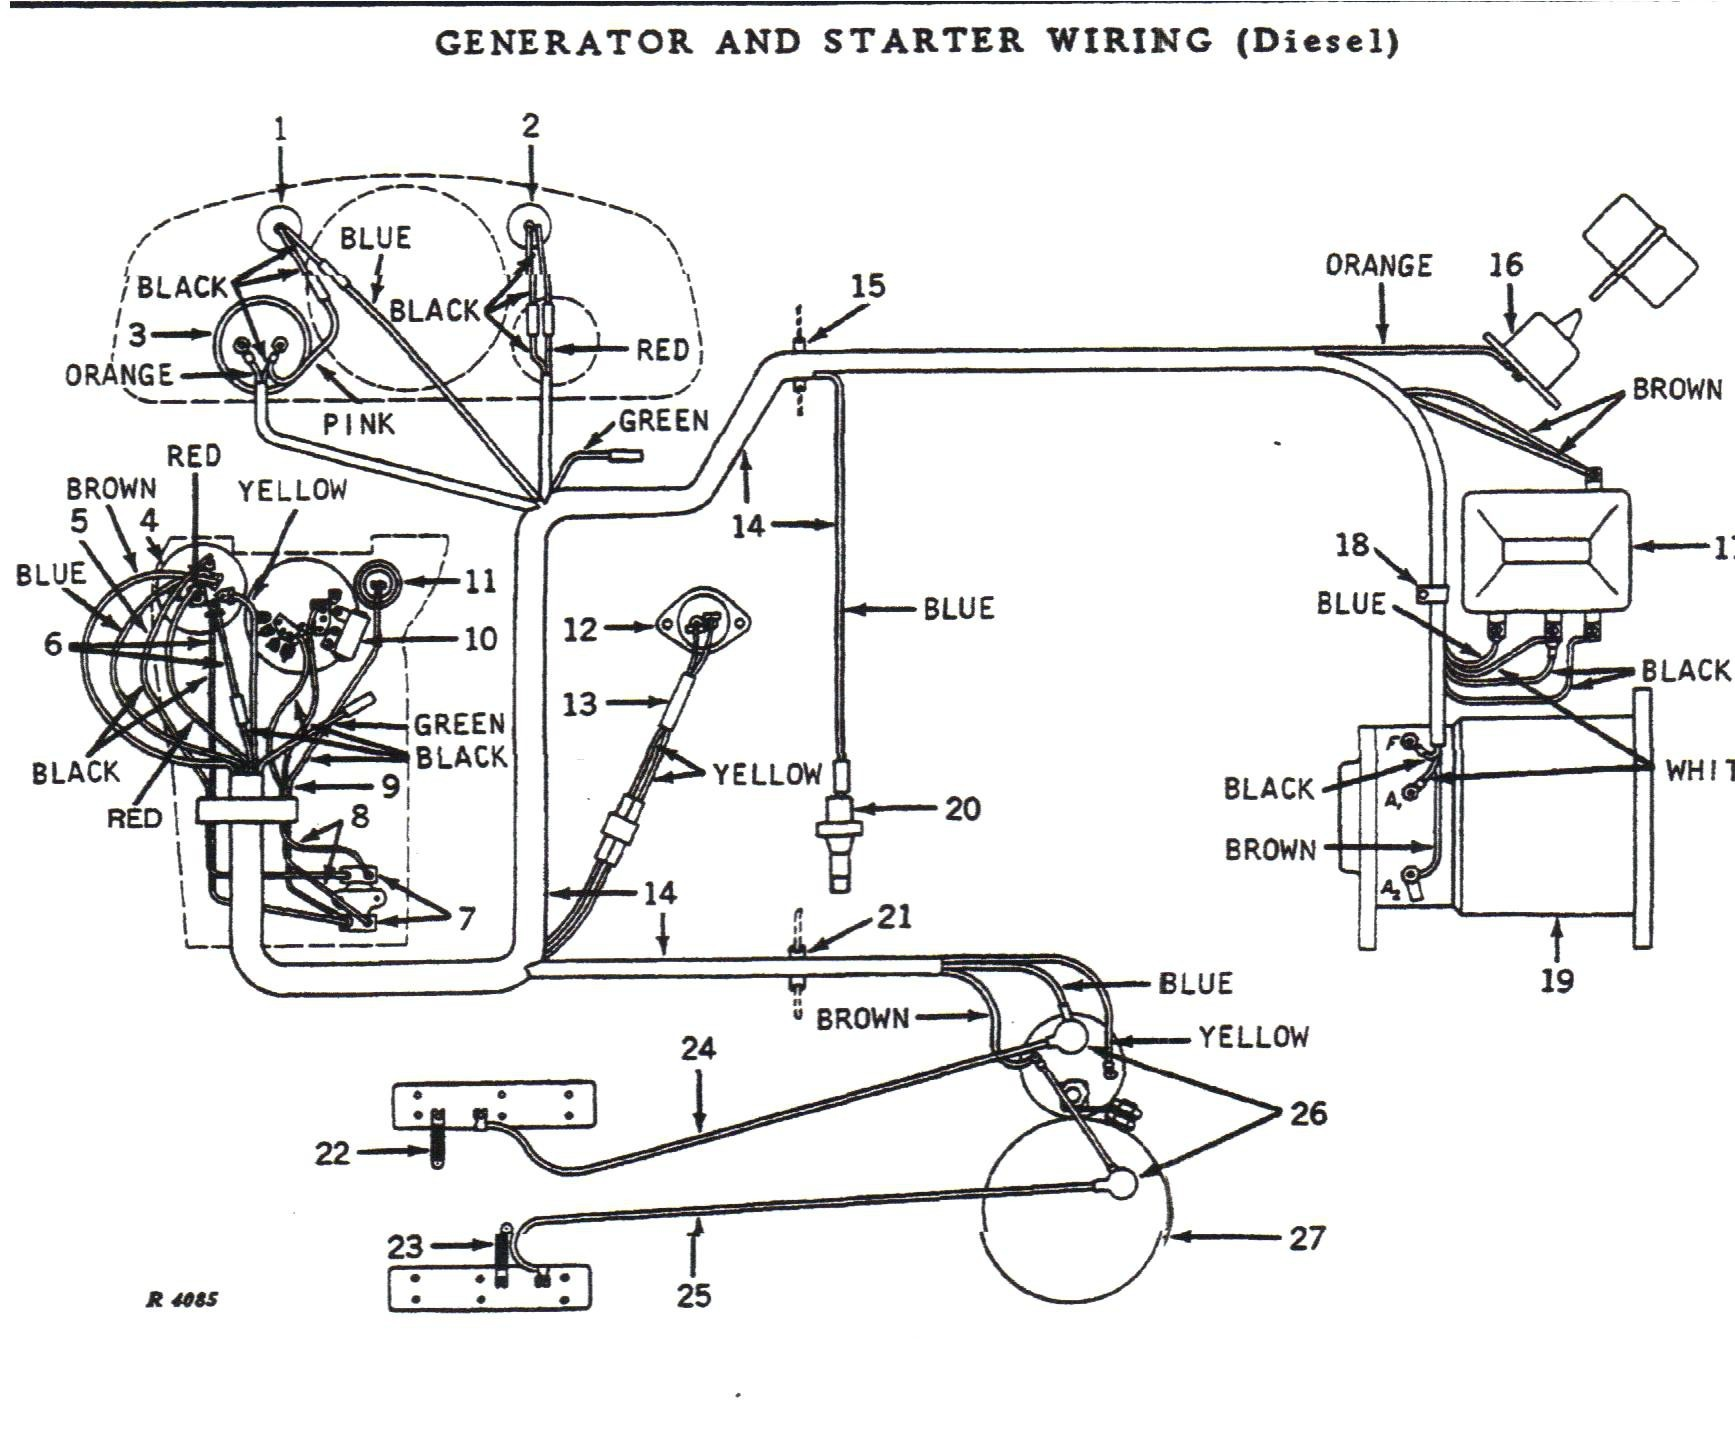 12 Volt Hydraulic Pump Wiring Diagram Meyer Snow Plow. 12 Volt Hydraulic Pump Wiring Diagram Meyer Snow Plow Best. Wiring. Meyer Snow Plow Wiring Diagram For Hydraulic At Scoala.co